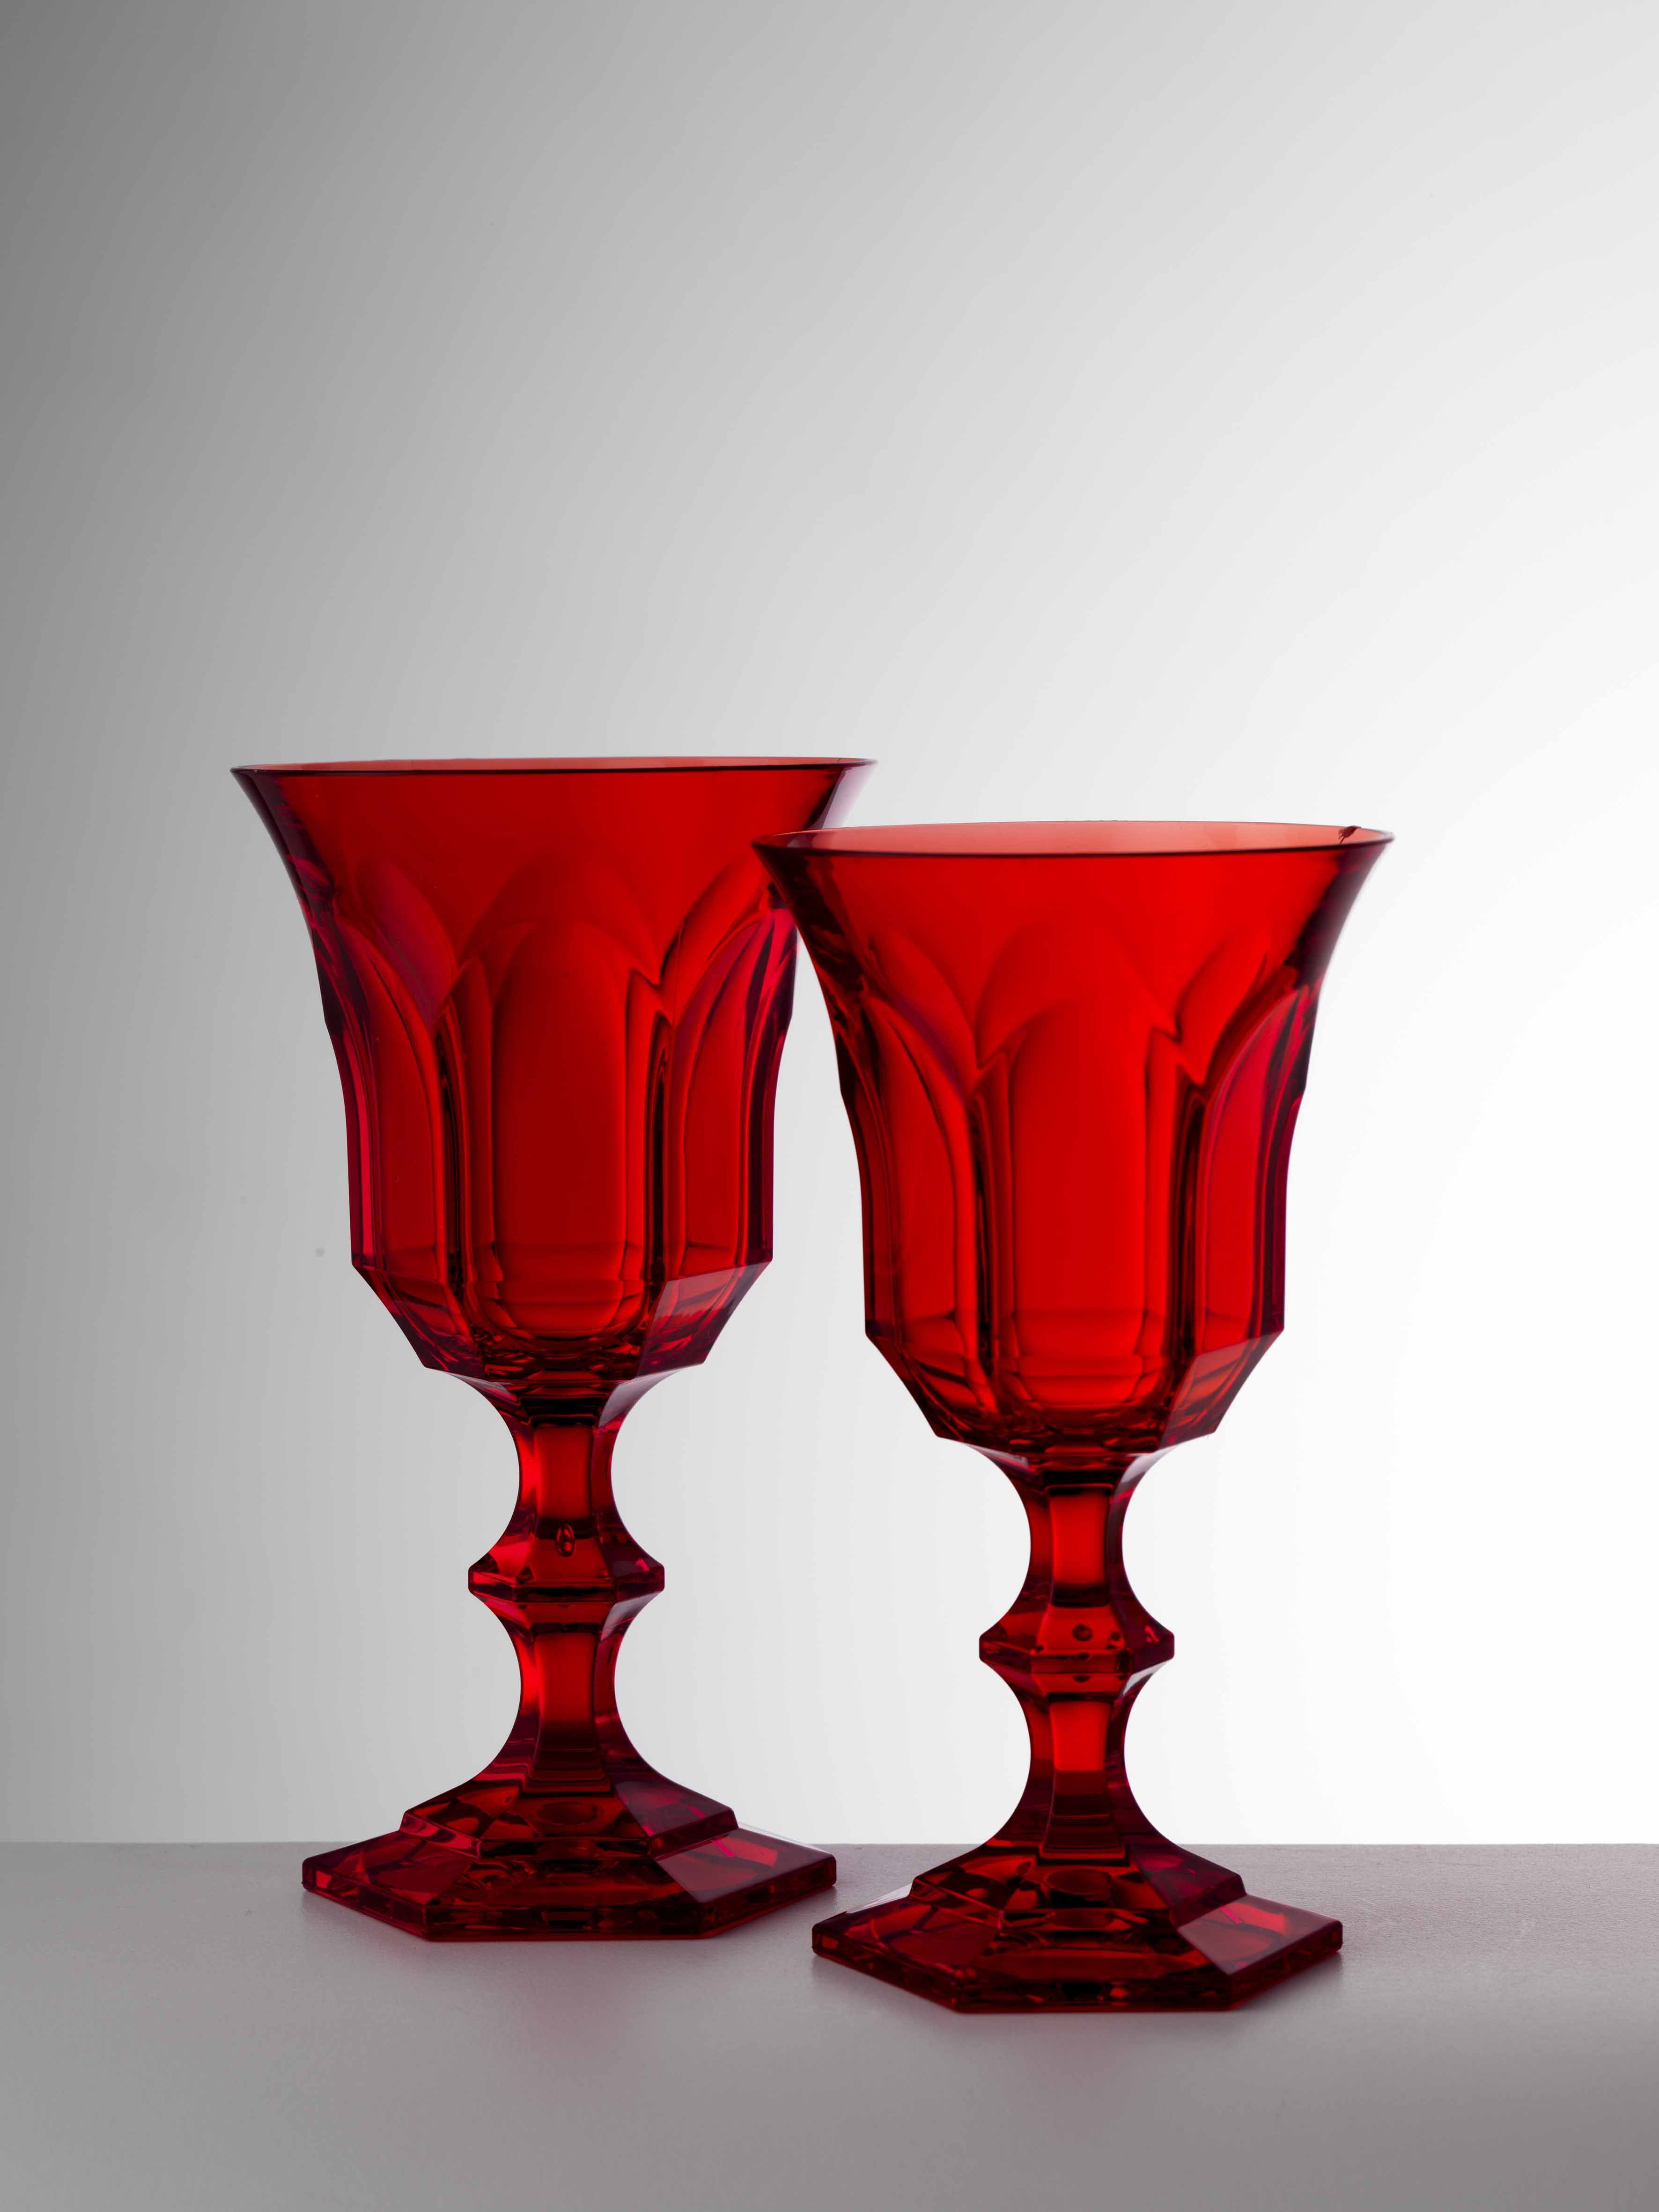 Our Top Five January Maison Et Objet Mario Luca Giusti Red Glass Luxury Tableware